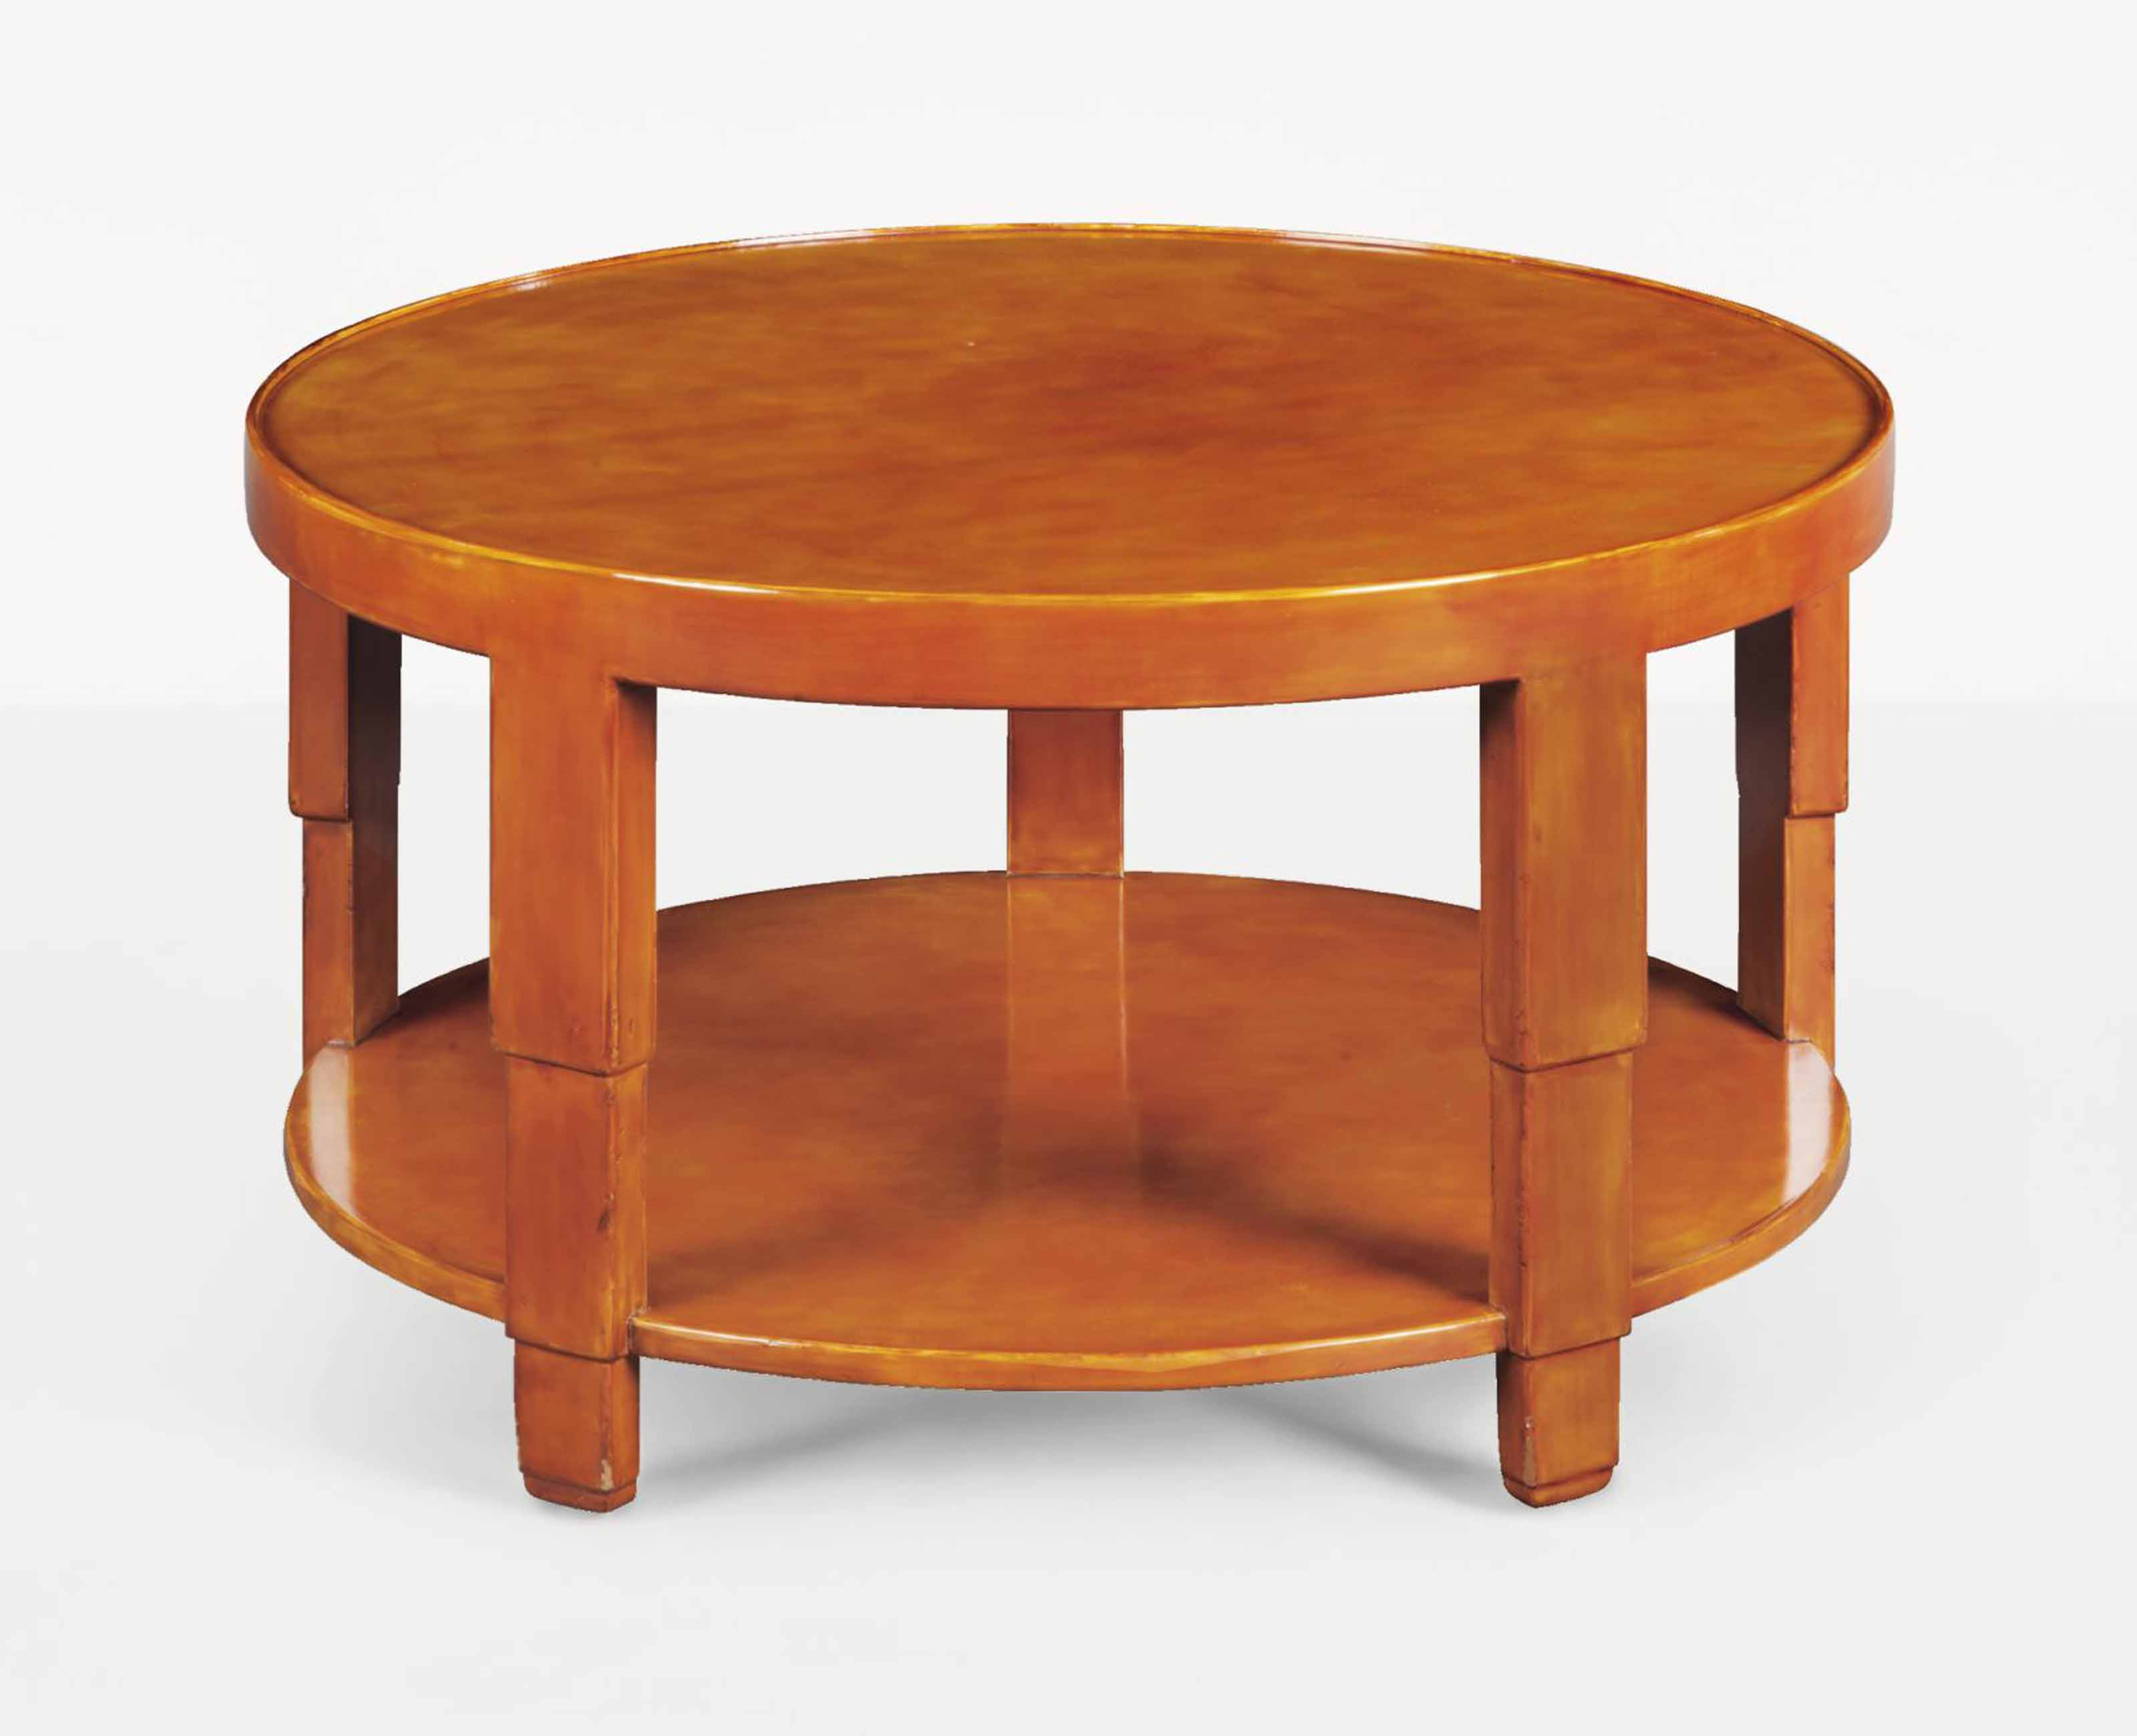 Jean dunand 1877 1942 table basse circulaire a deux plateaux le modele cree vers 1925 - Modele table basse ...